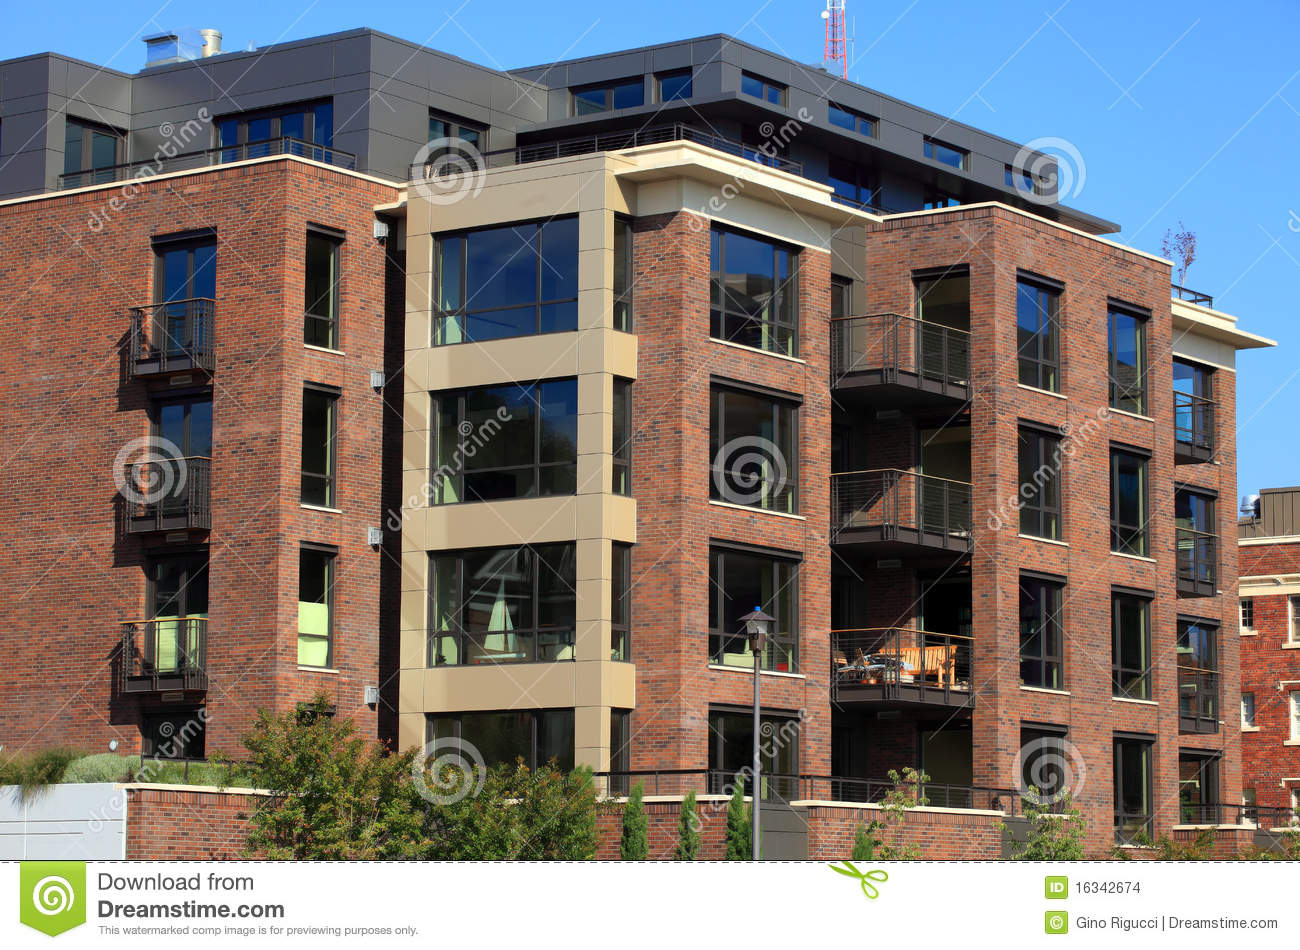 Queen anne condominiums seattle wa stock images image Built in seattle